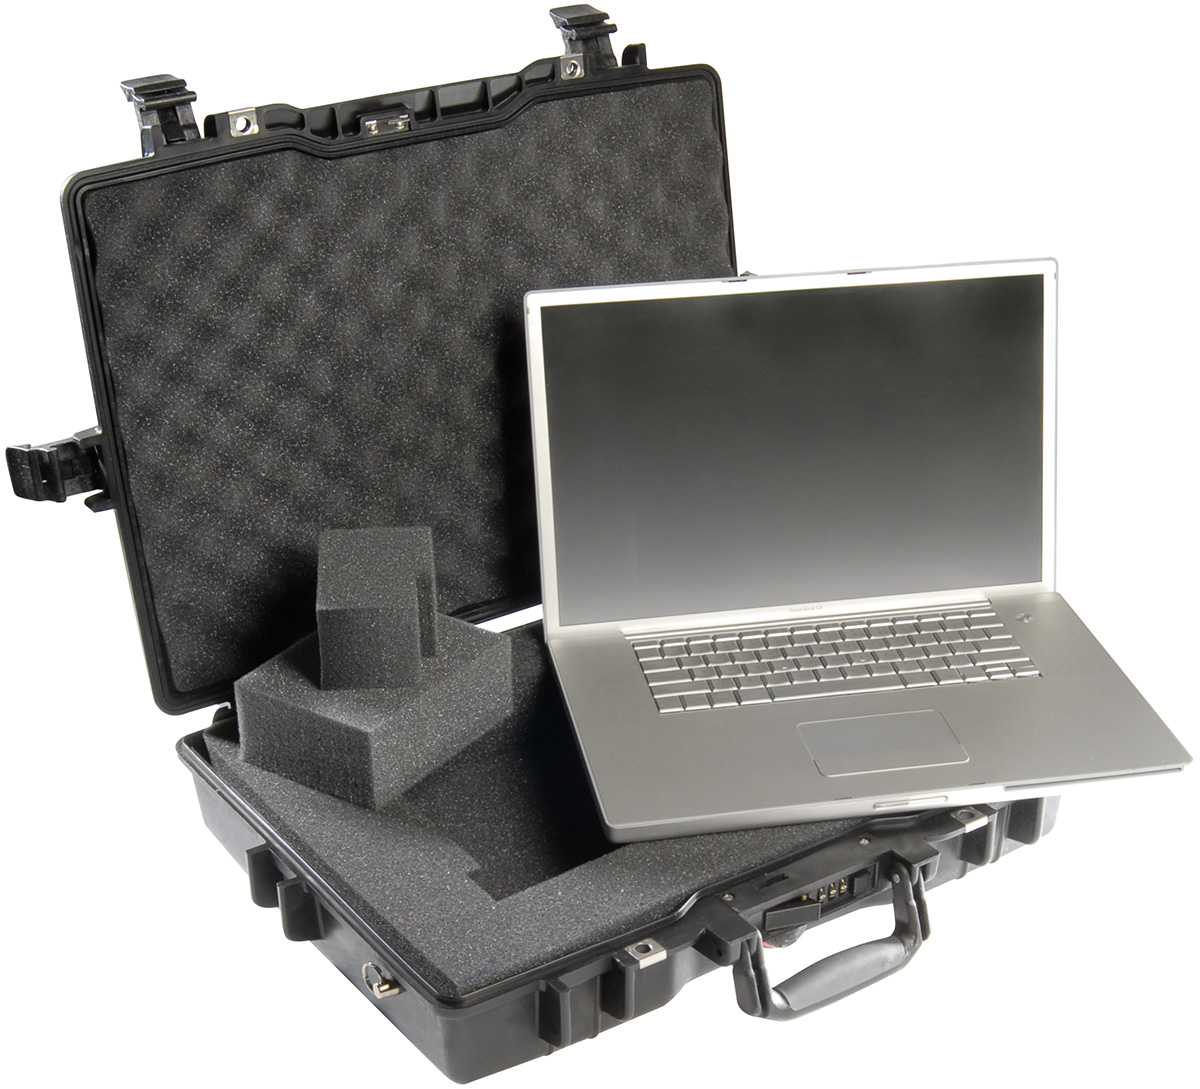 pelican usa made macbook laptop hard case